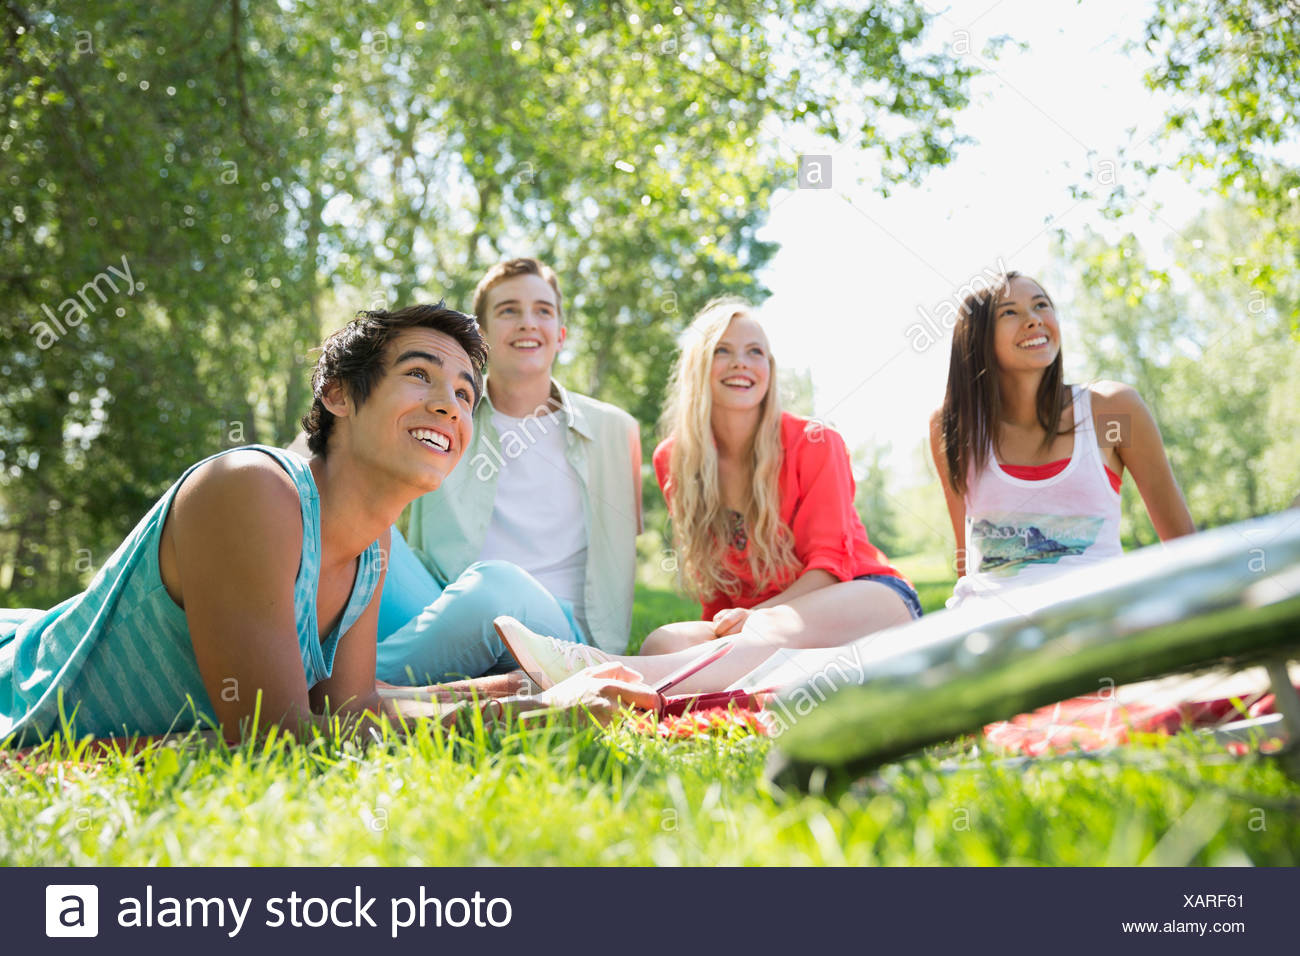 Teenagers hanging out at a park - Stock Image